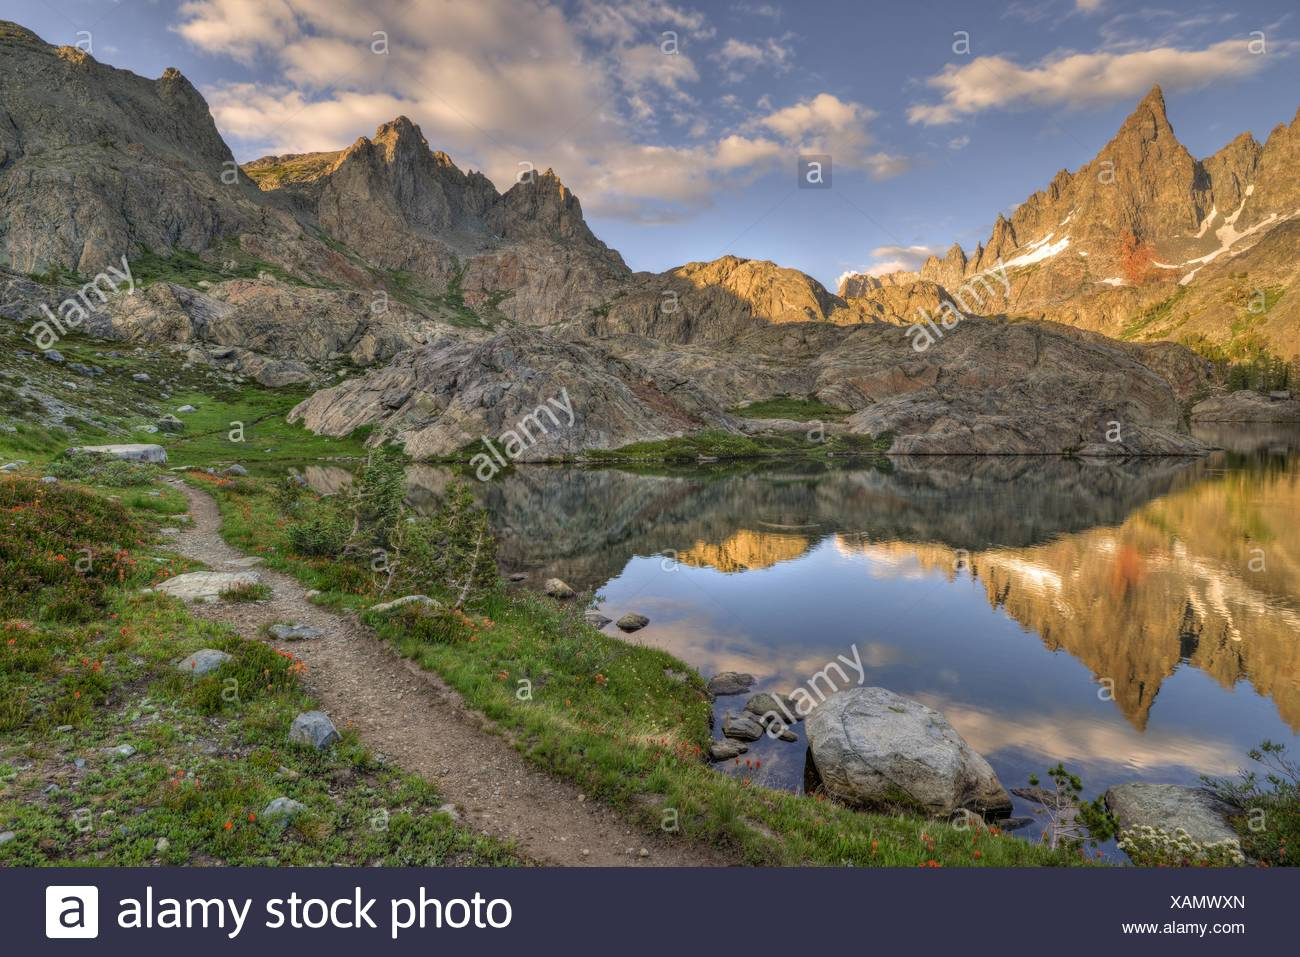 USA, California, Inyo National Forest, Path to Mountains - Stock Image